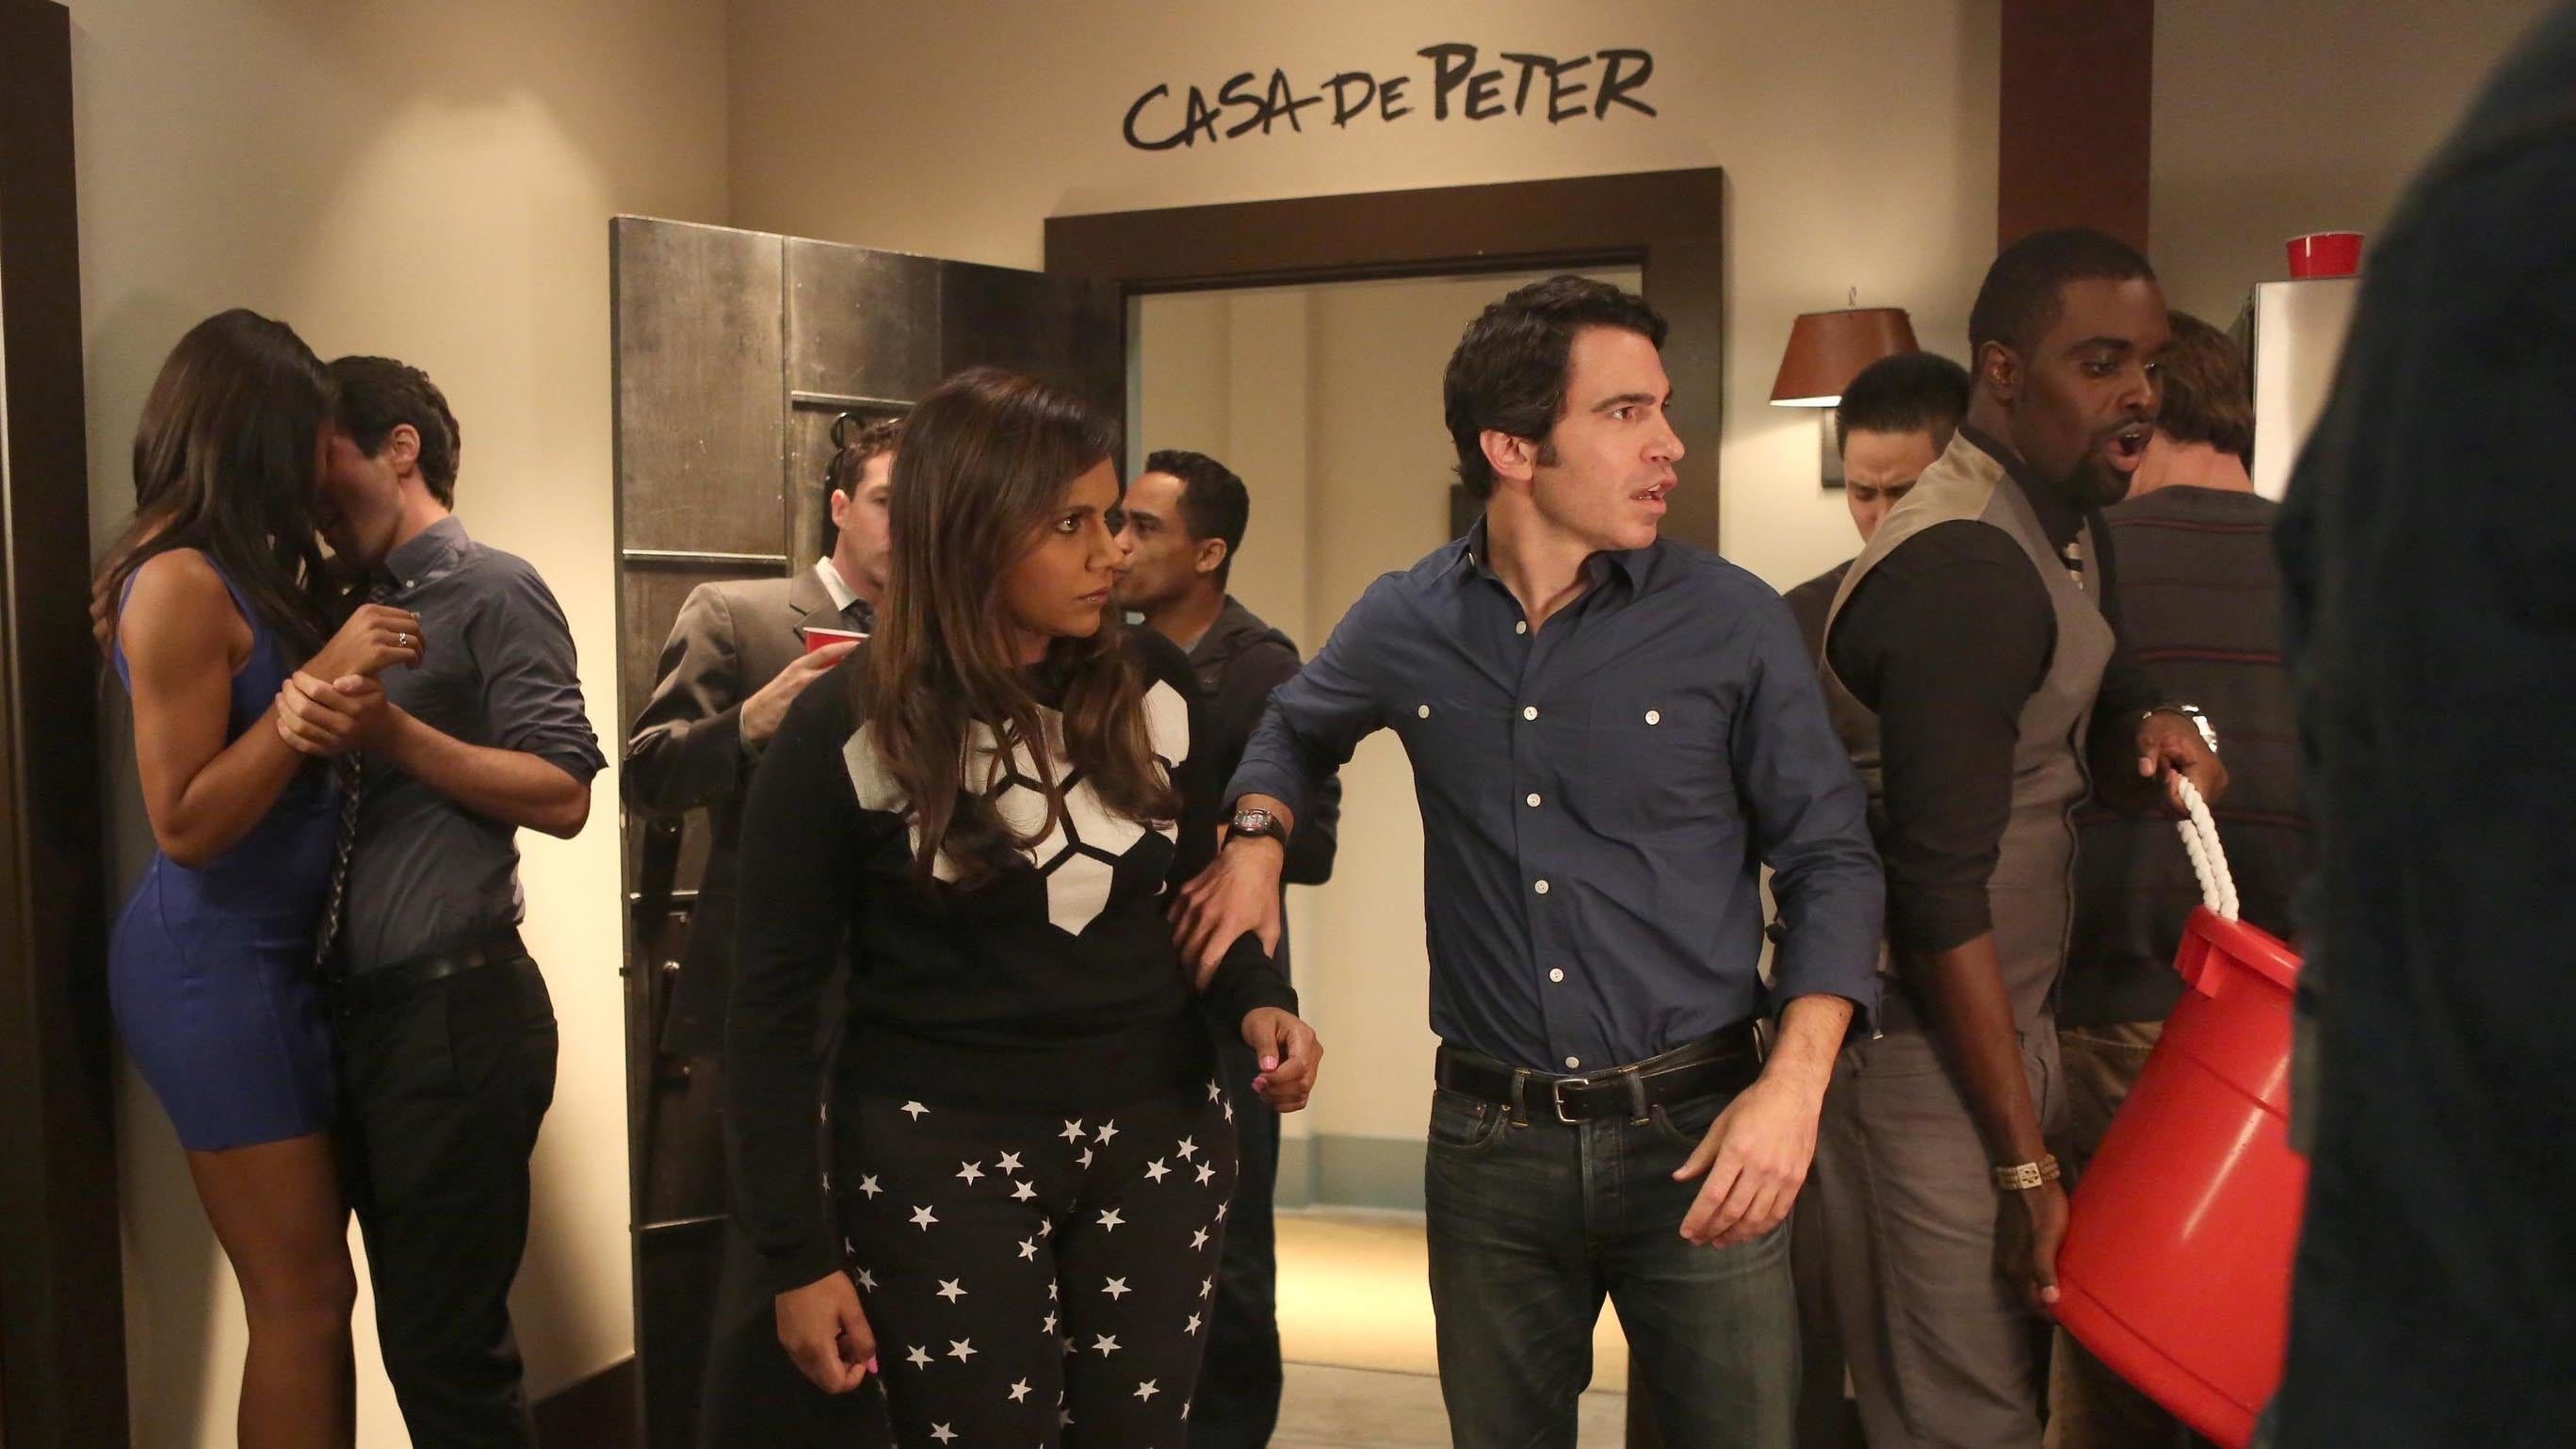 the mindy project full episodes online The mindy project season 6 episode 1 full online, the mindy project season 6 episode 1 full,  watch the mindy project season 6 episode 1 full episodes.